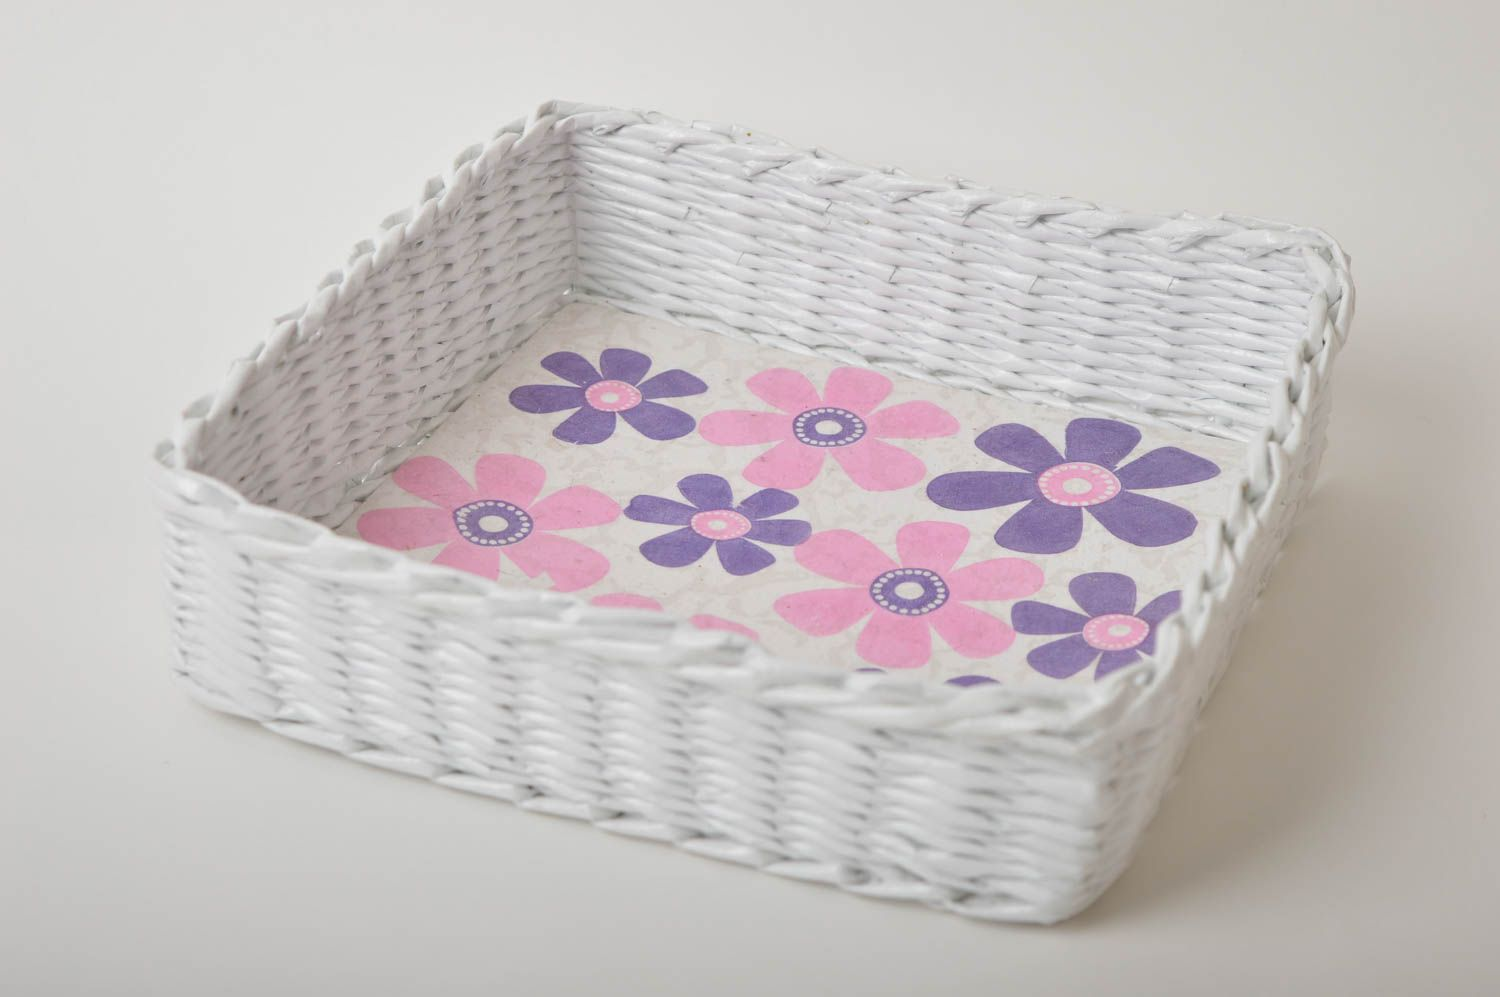 Handmade decorations woven basket paper basket gifts for women home decor photo 3